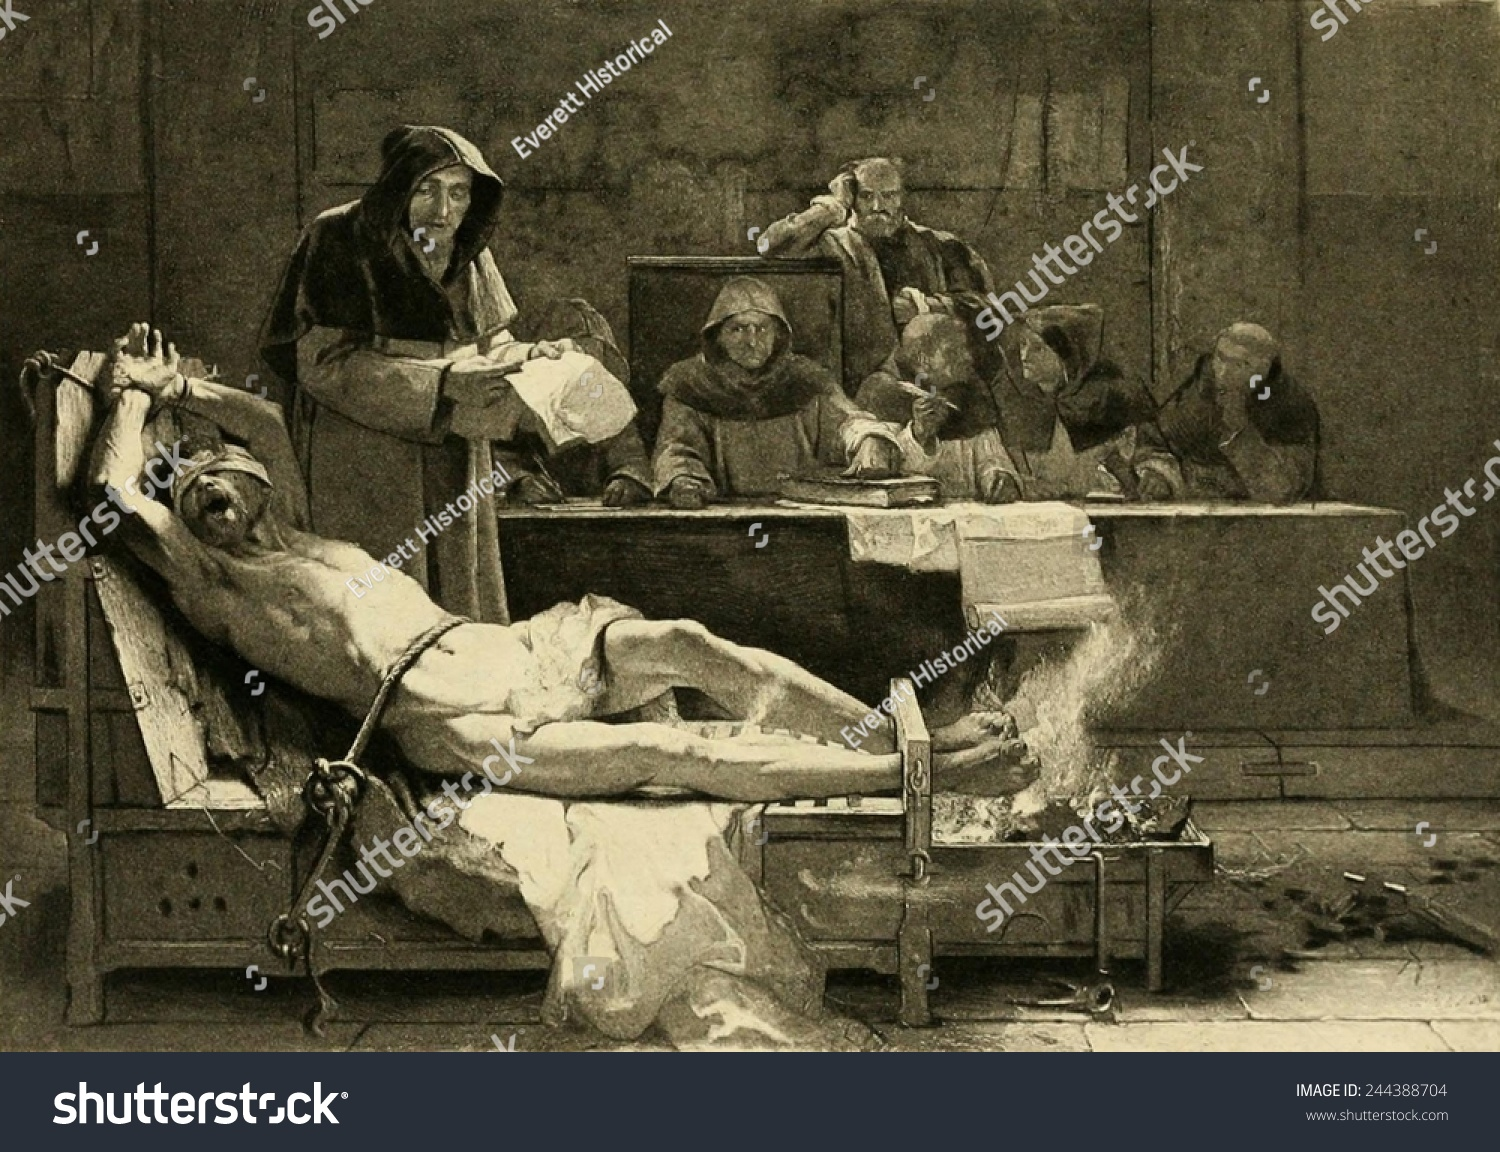 victim spanish inquisition being tortured before stock illustration